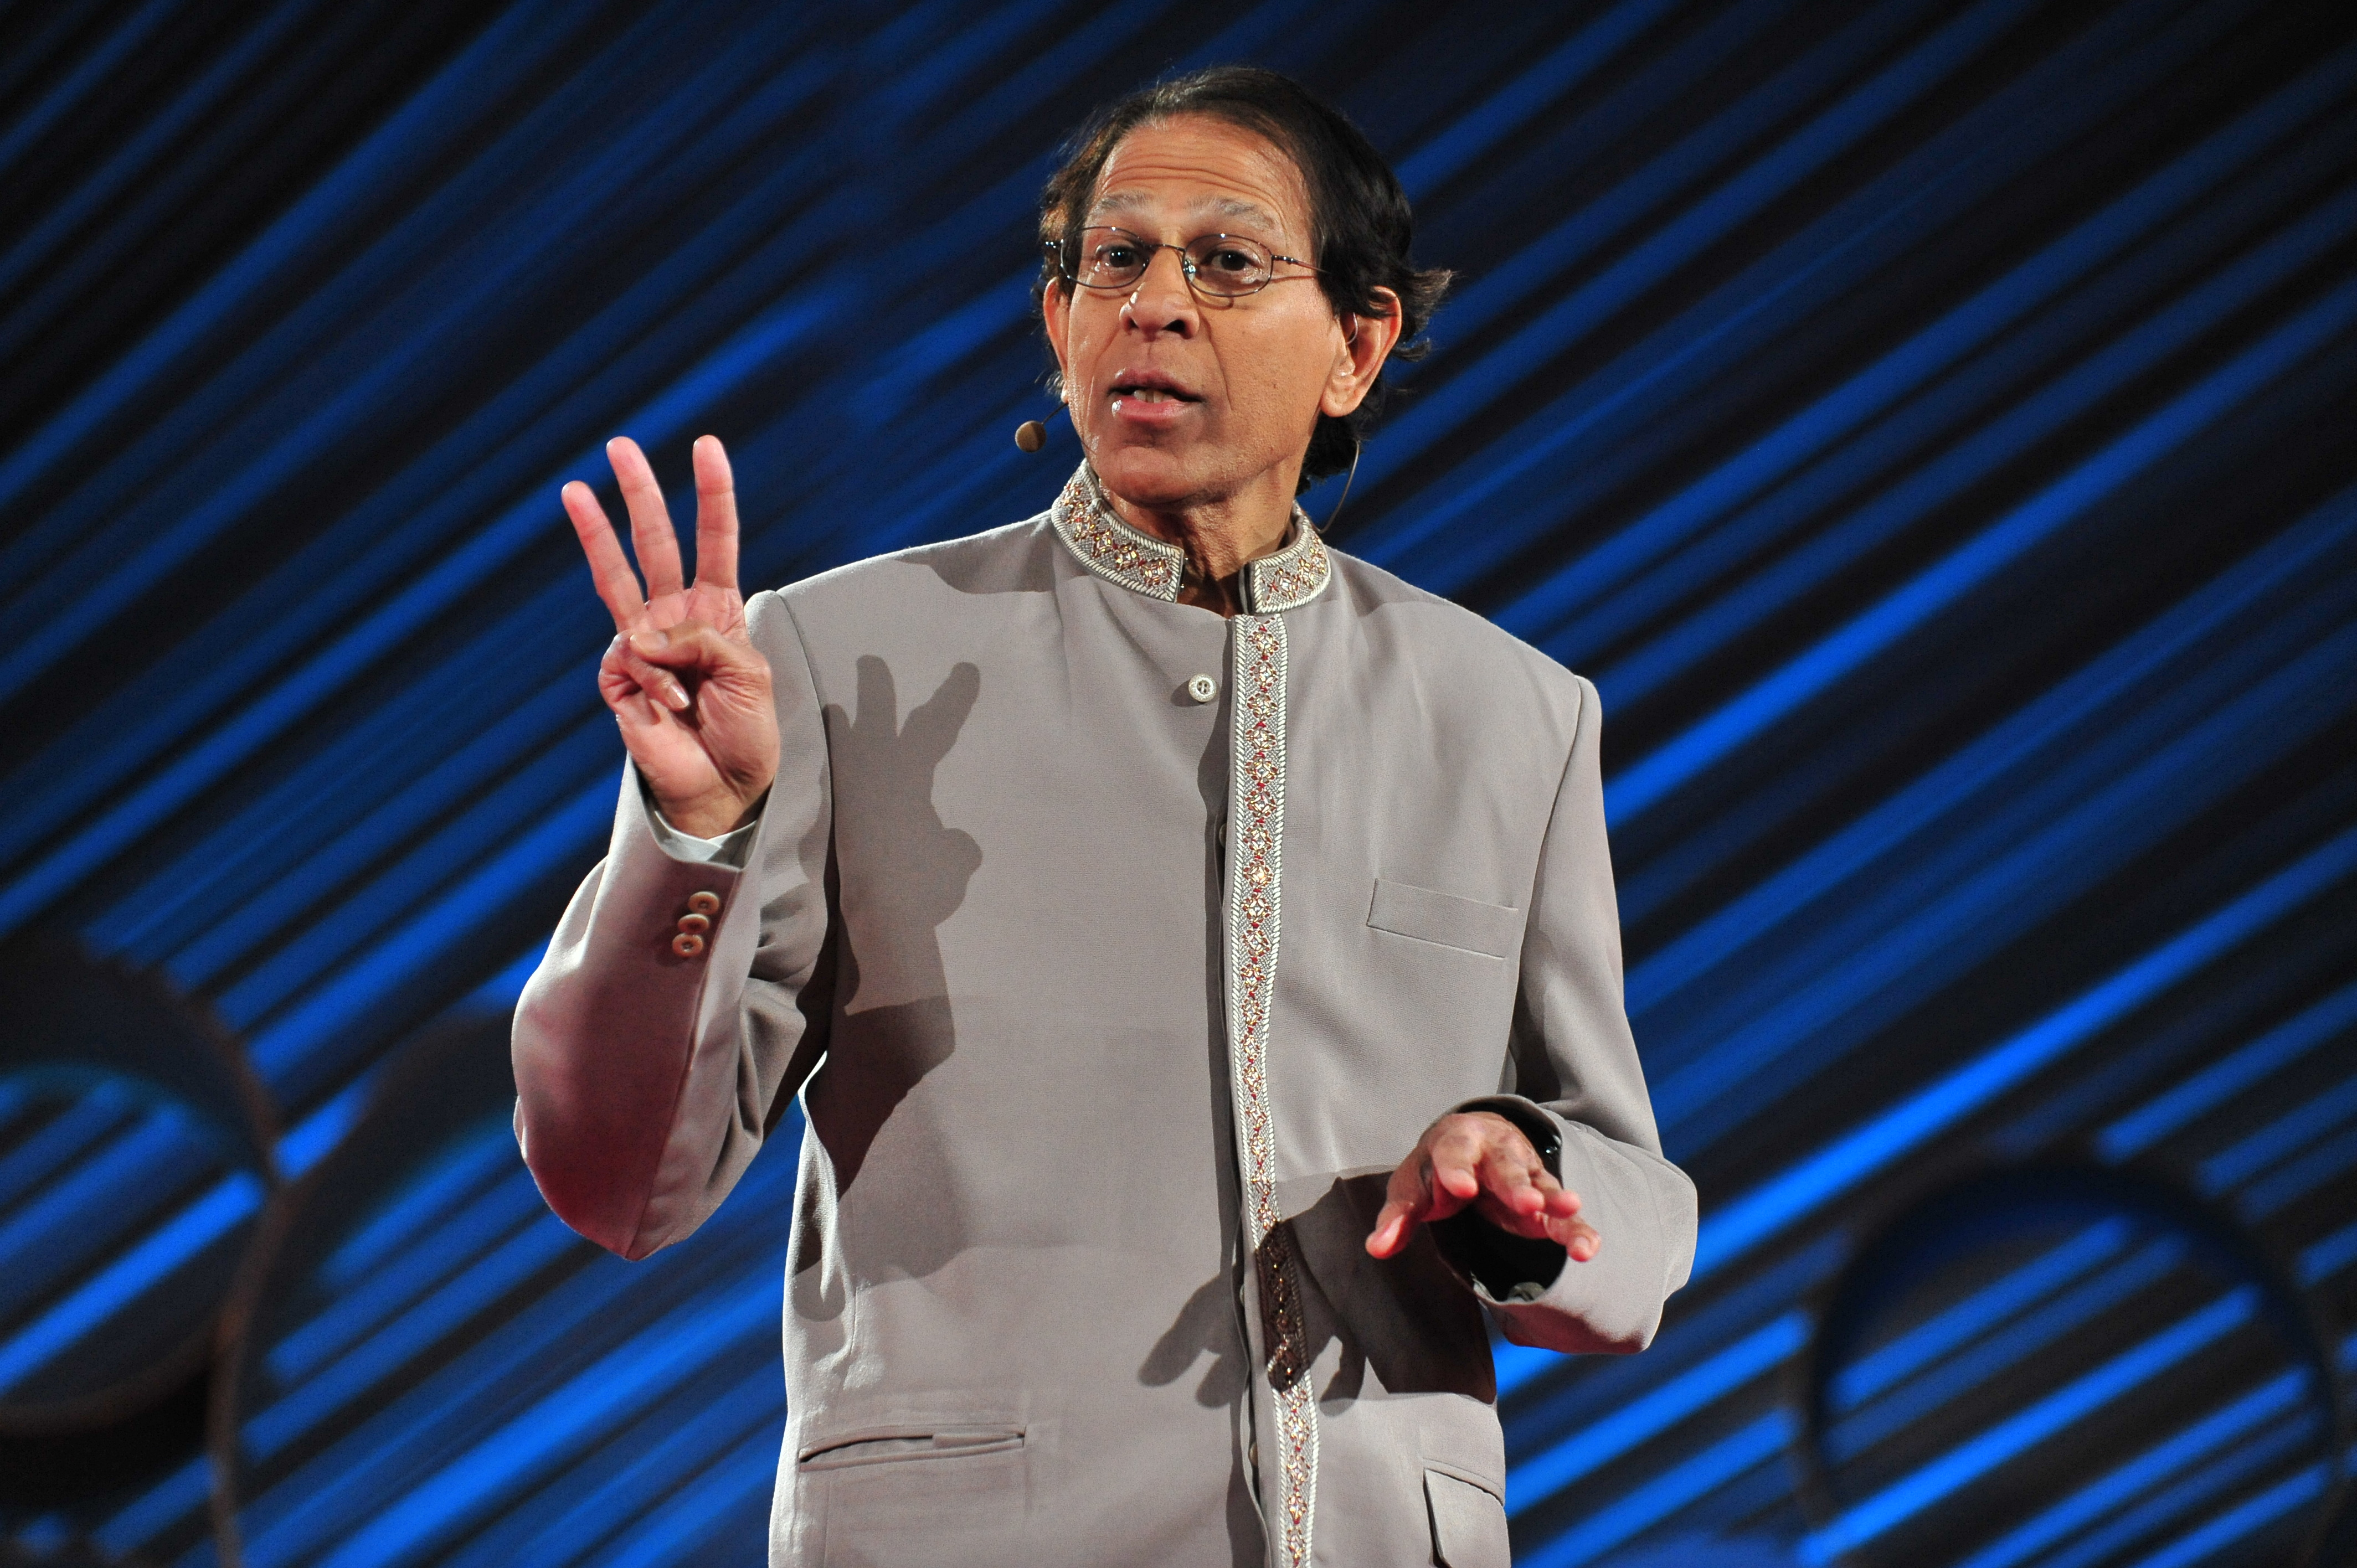 Dilip Jeste, MD on TEDMED Stage - 4